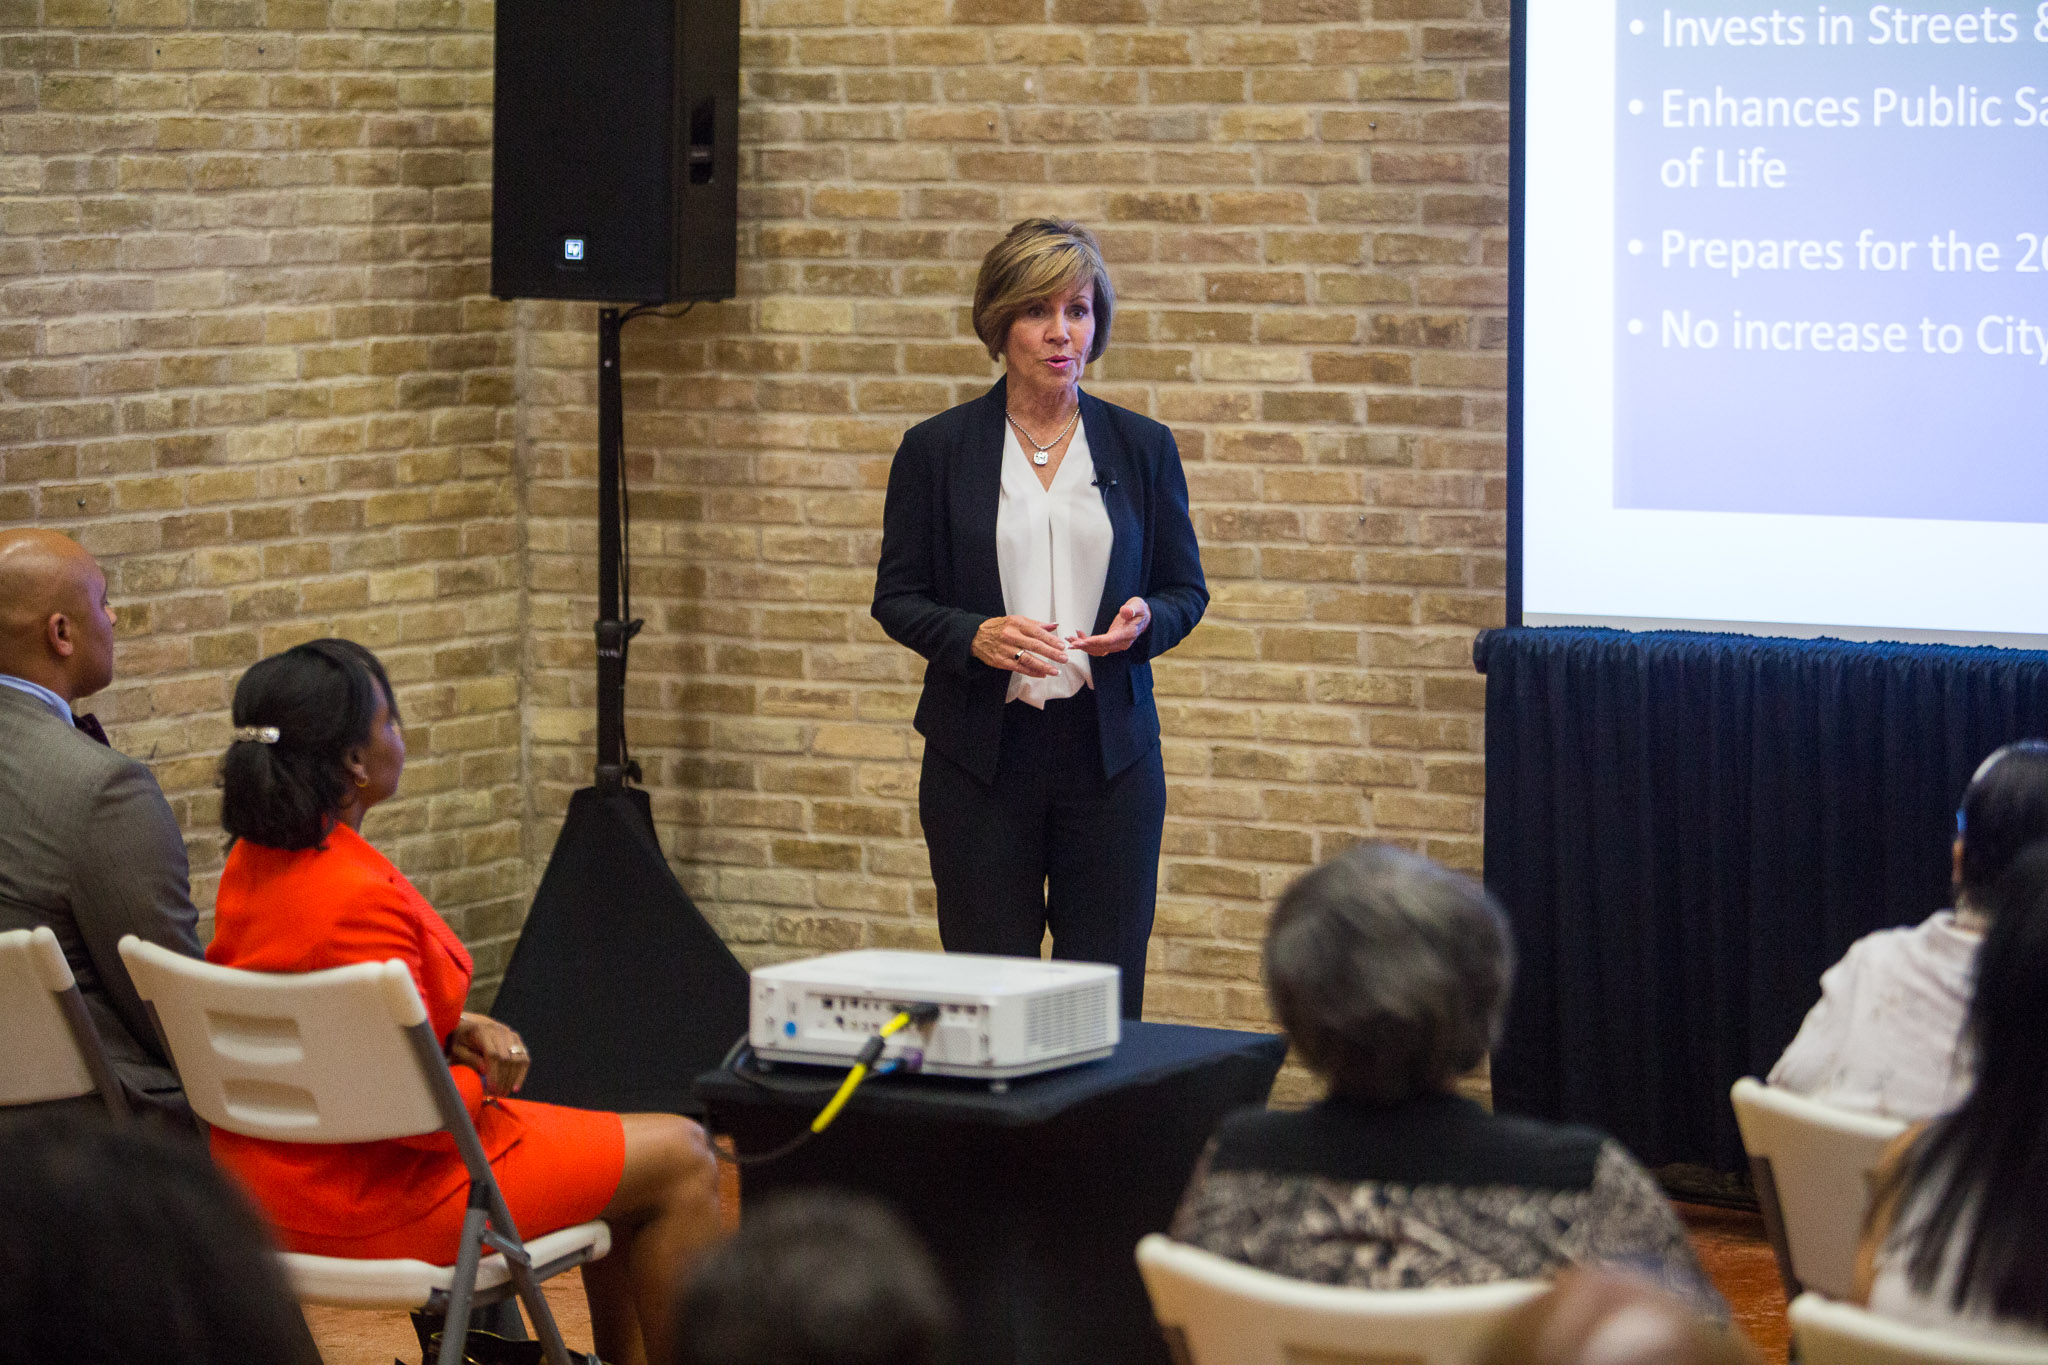 City Manager Sheryl Sculley presents the proposed 2017 San Antonio budget to citizens at the District 2 field office. Photo by Scott Ball.